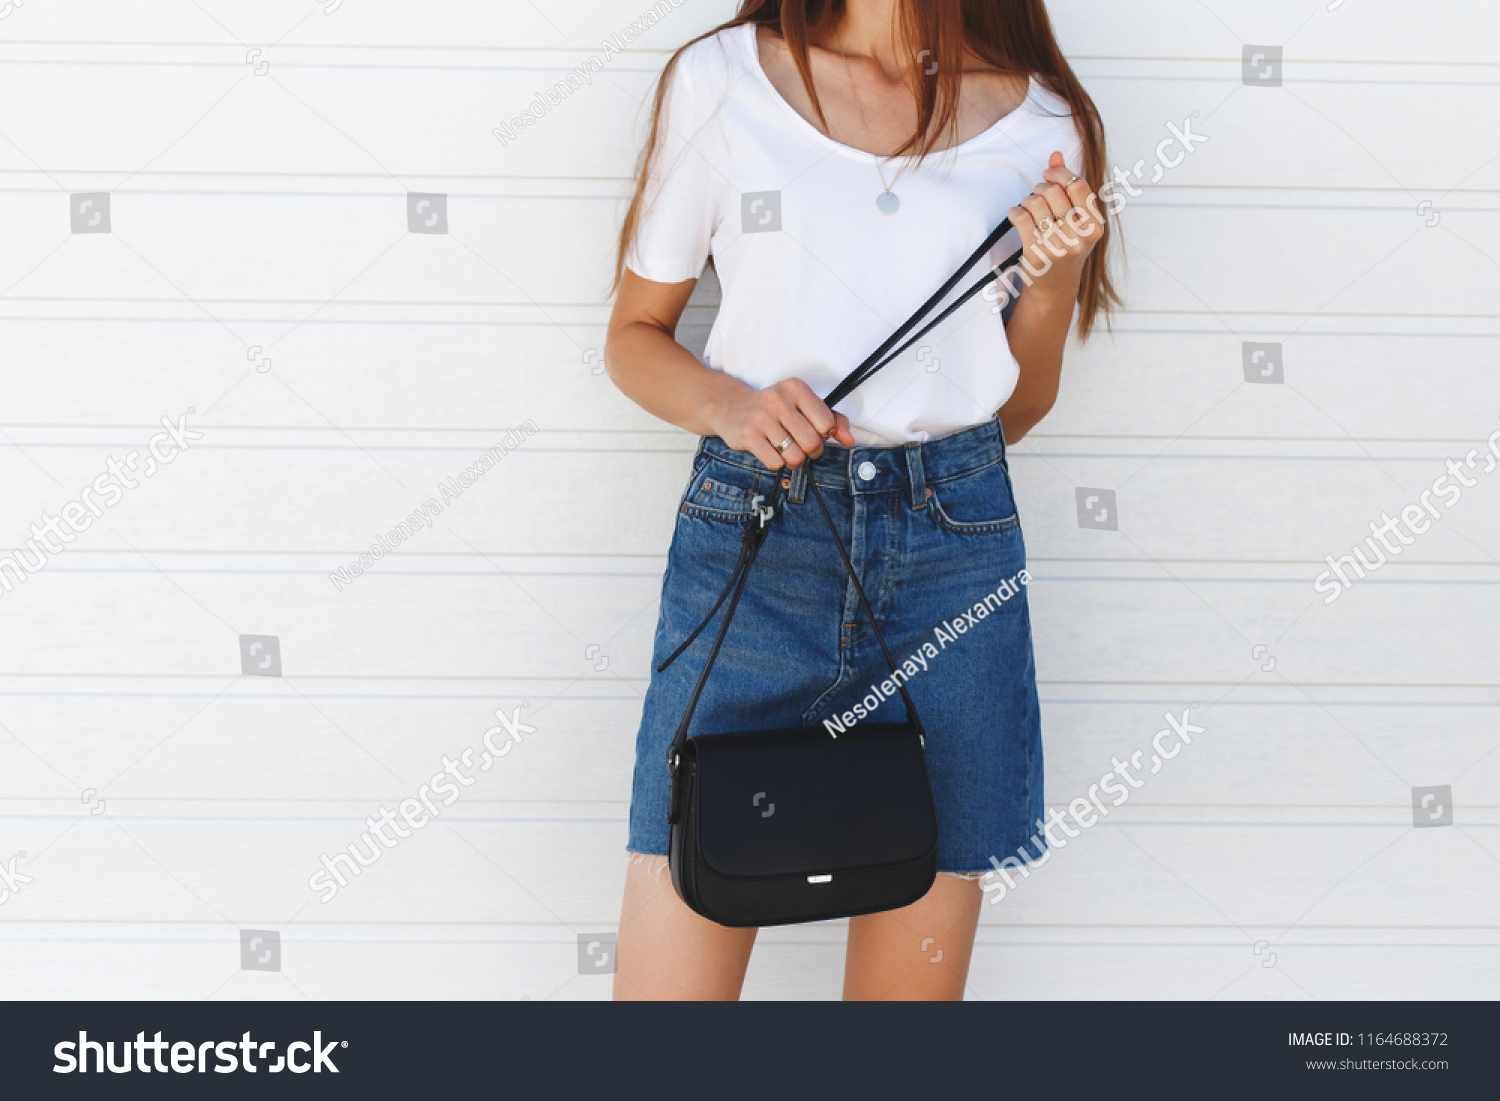 51a79a391ddac Details of trendy casual summer or spring outfit. Woman wearing blue denim  mini skirt,